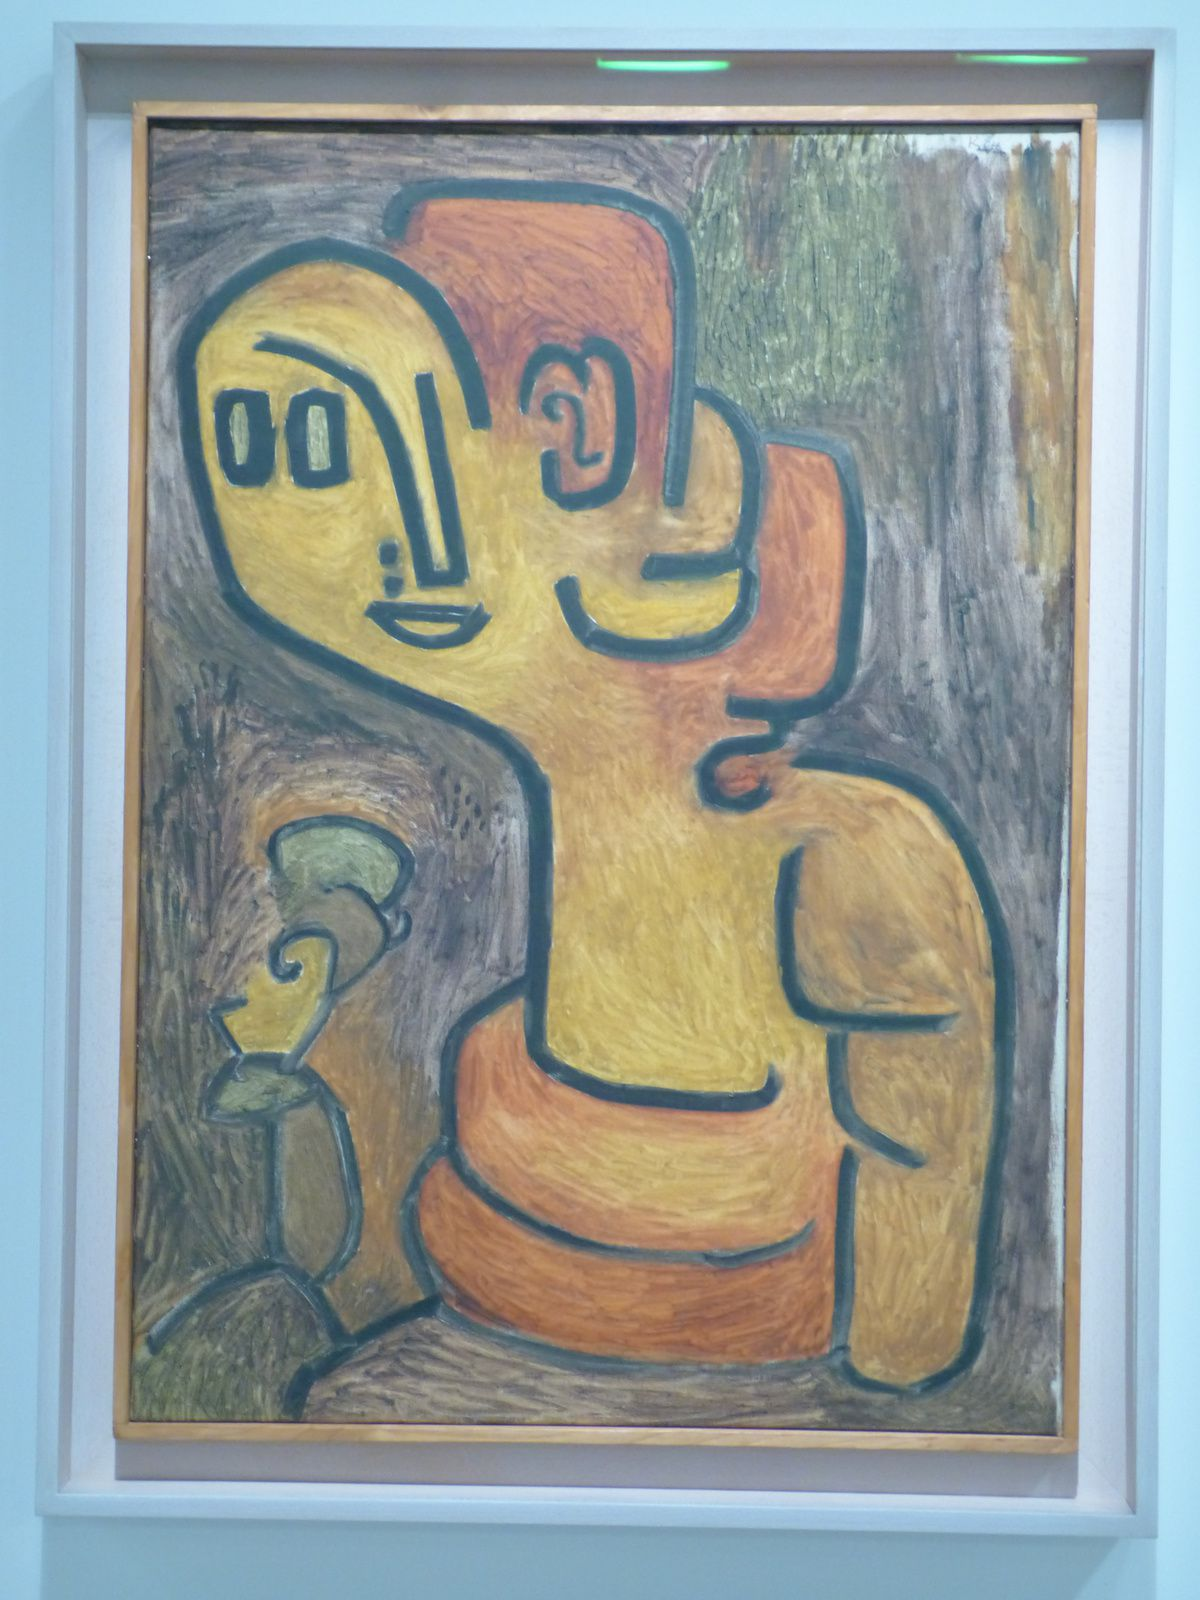 en ce moment Exposition Paul Klee au Centre Pompidou à Paris.